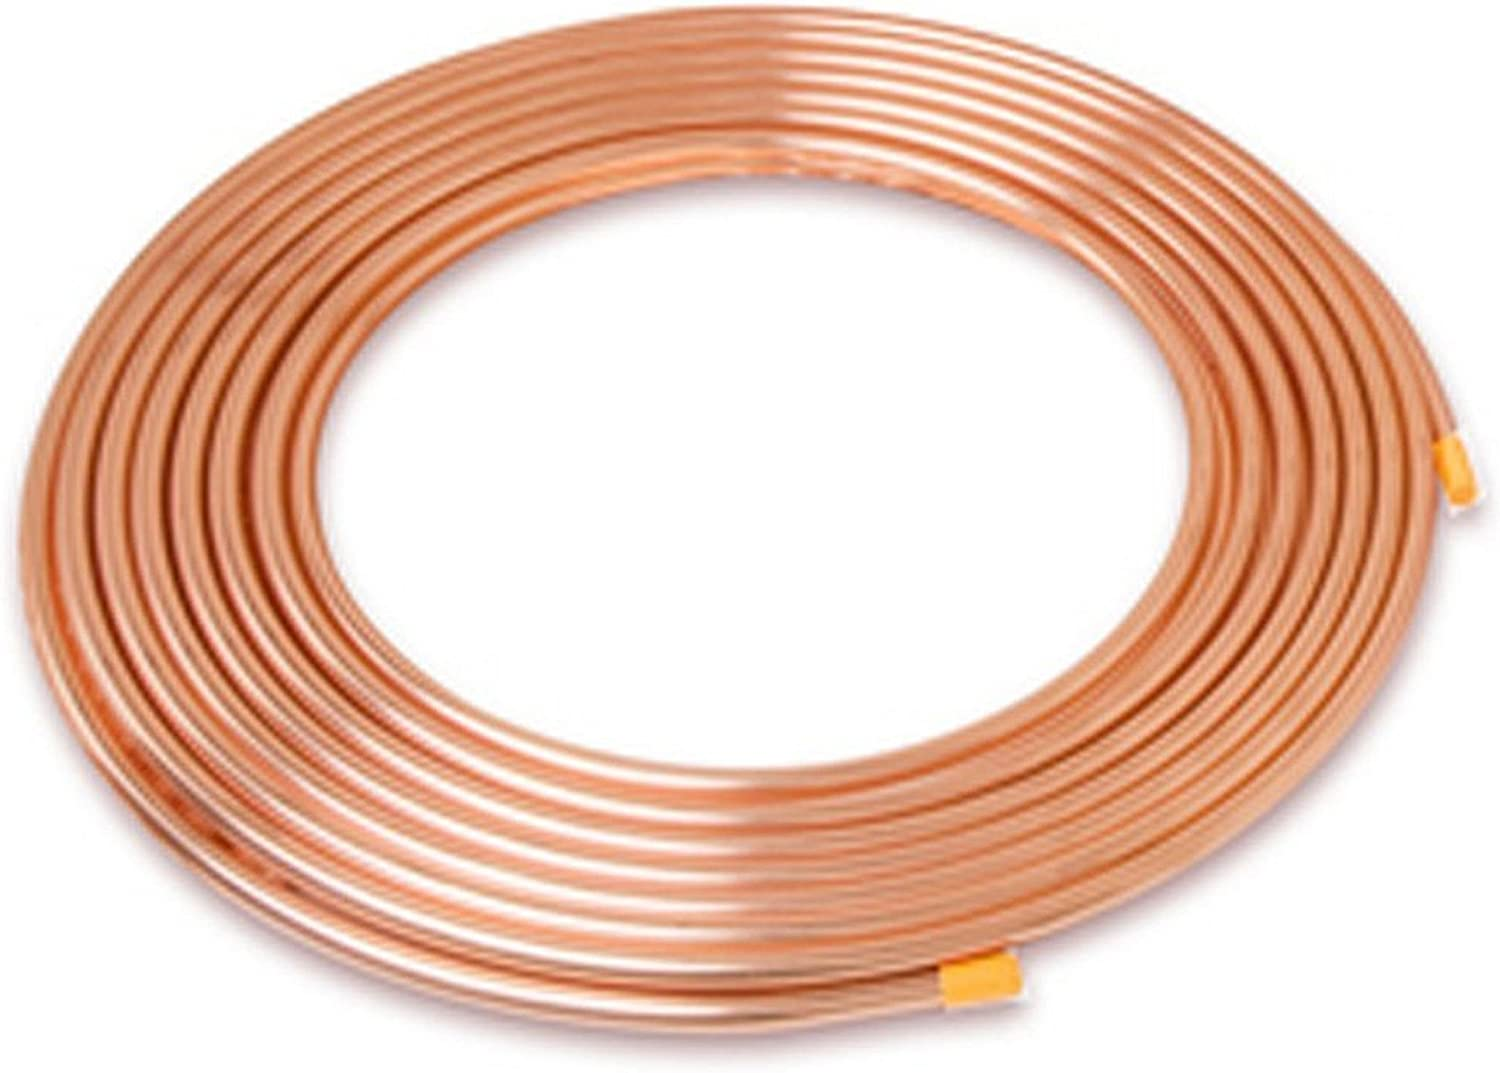 5 Pieces 3//8 Inch OD Soft Copper Tubing Minimum 12 inches long 3//8